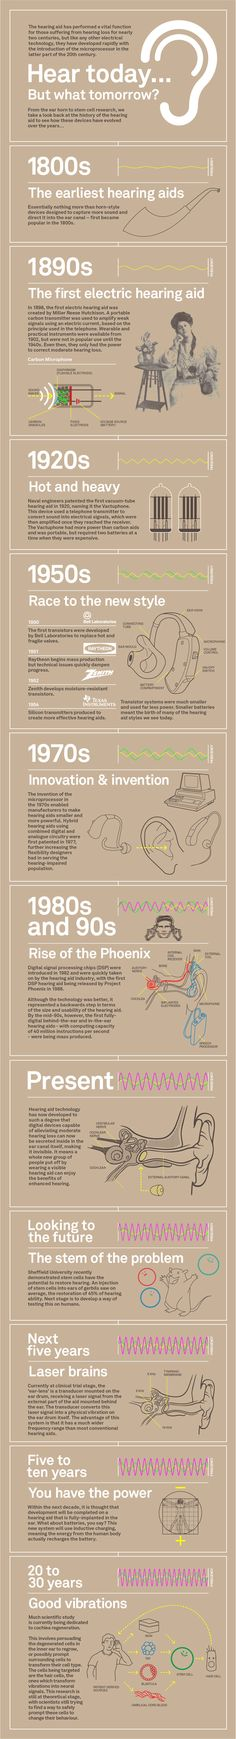 Great infographic looking at the progression of hearing aids from the 1800s to 20 years in the future!  See the full article here.